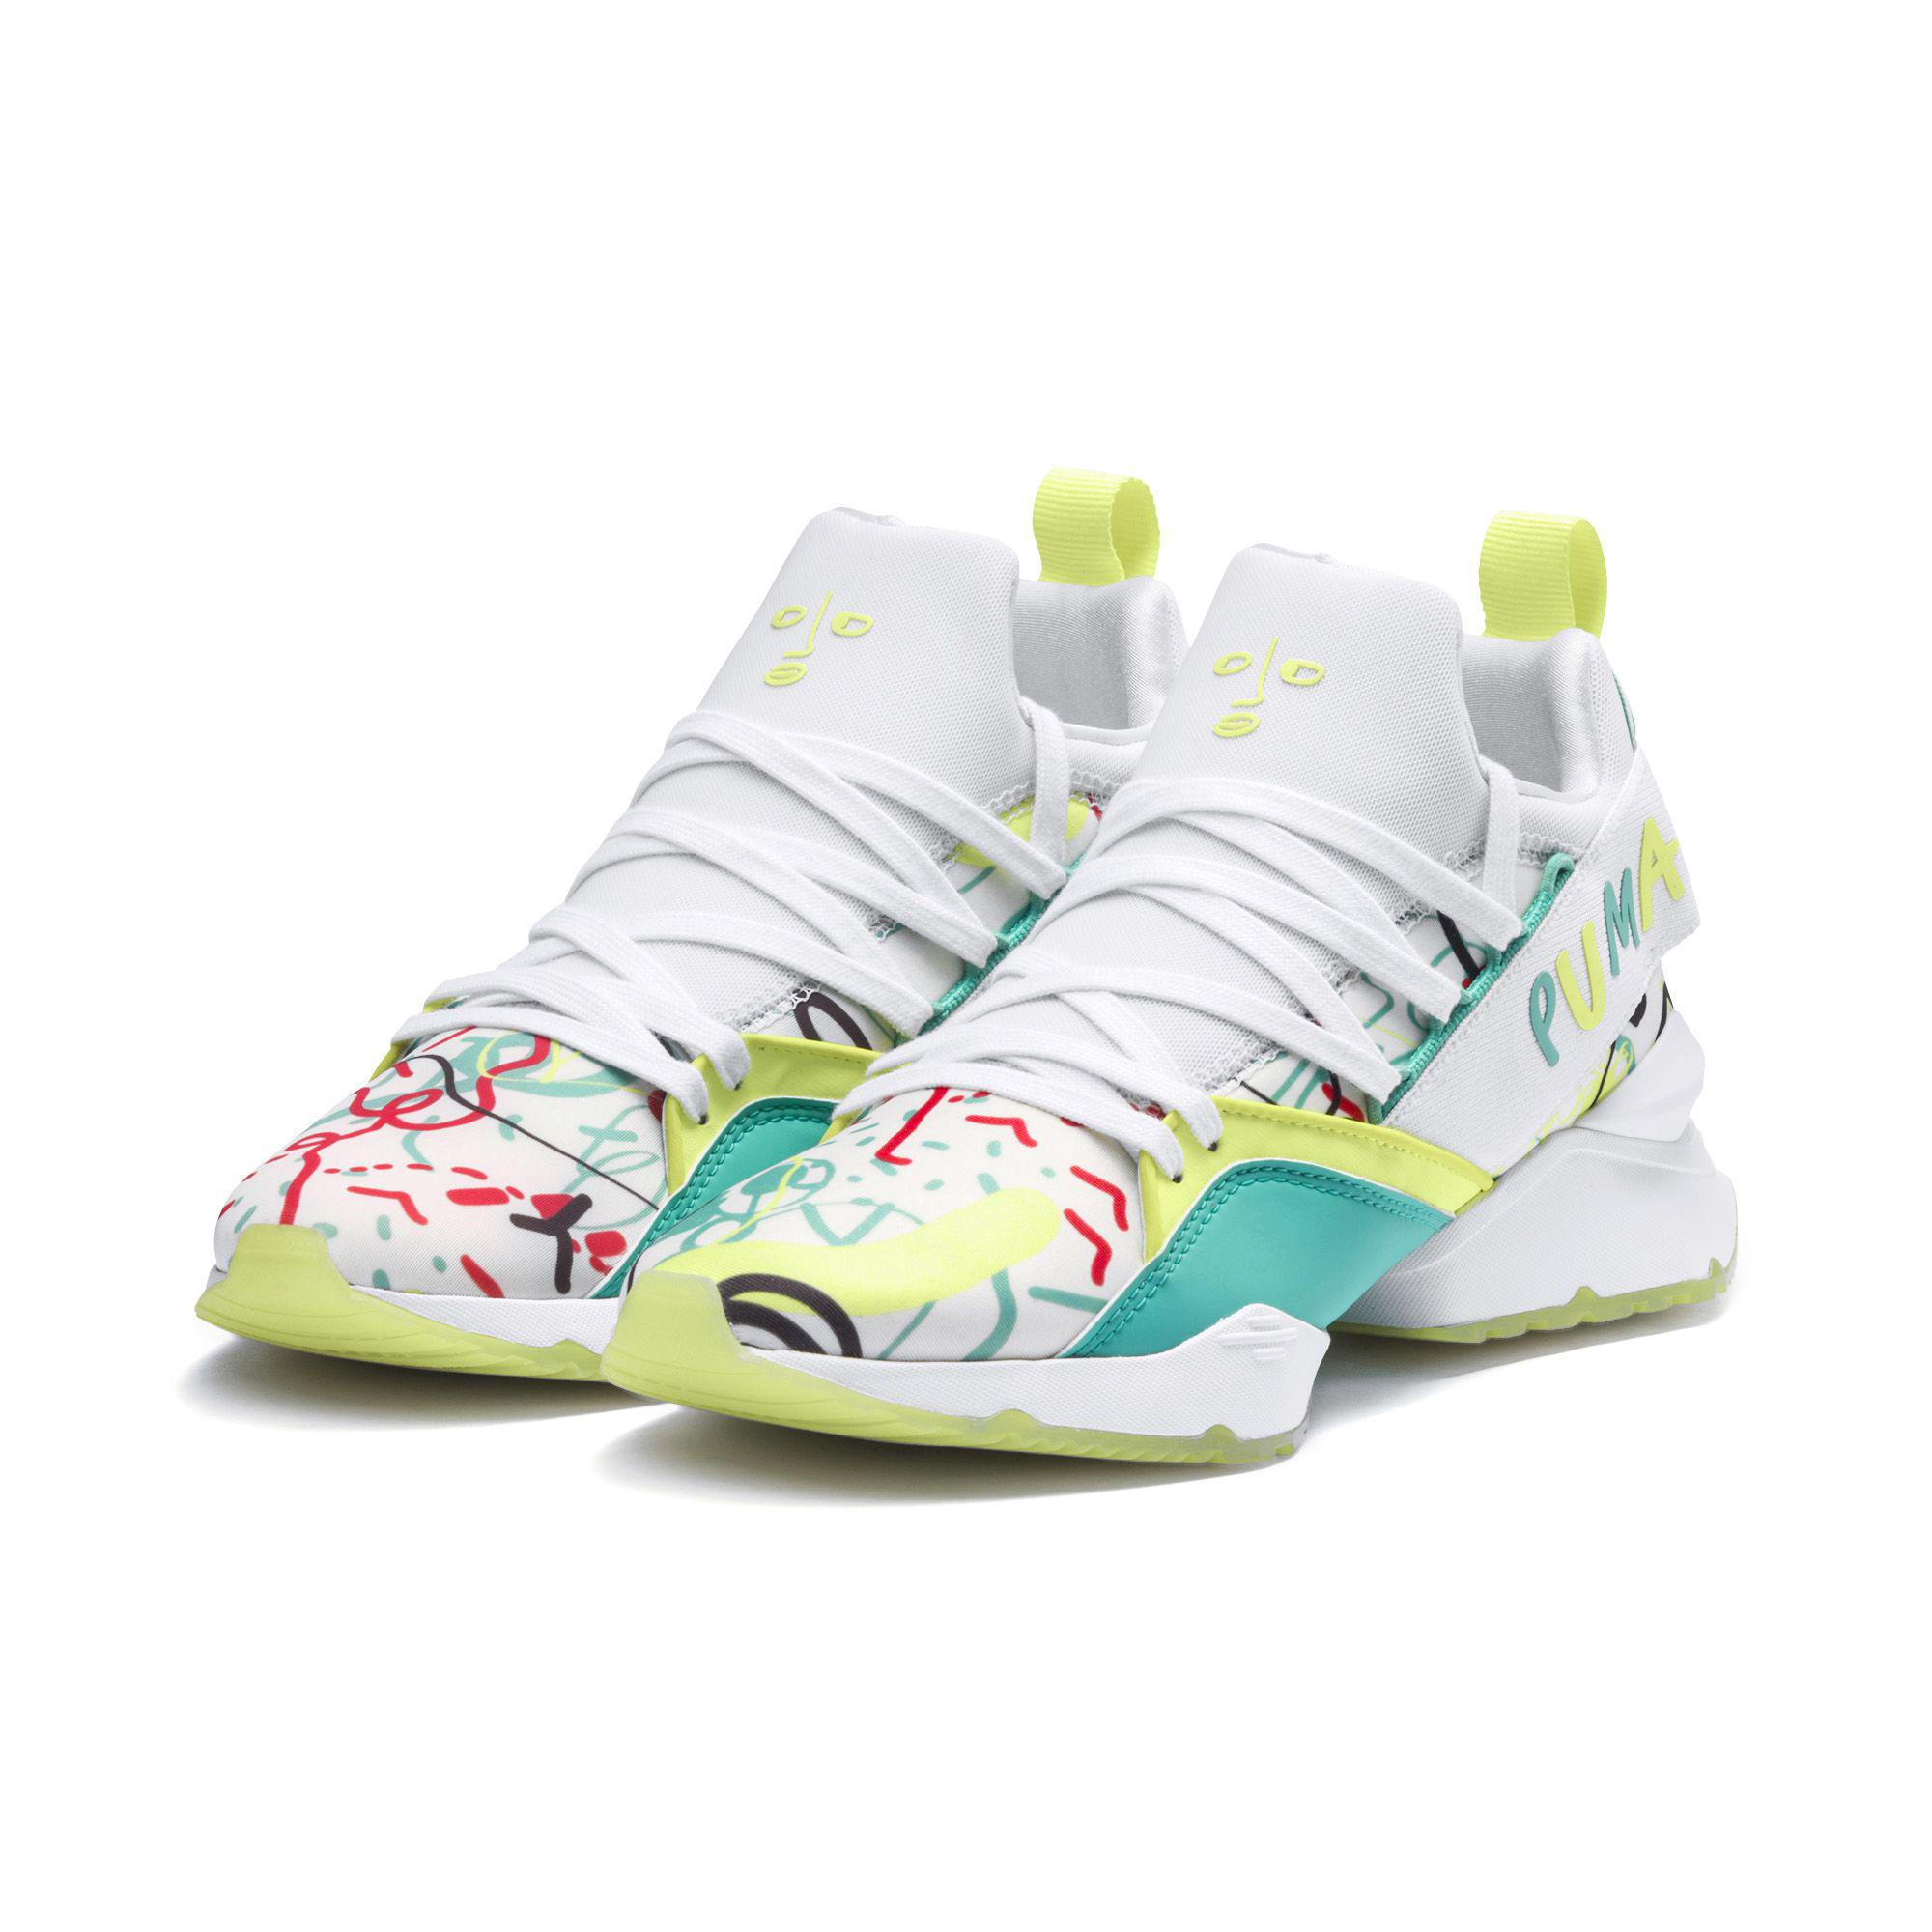 6eafb756f92 Lyst - PUMA X Shantell Martin Muse Maia Women s Sneakers in White